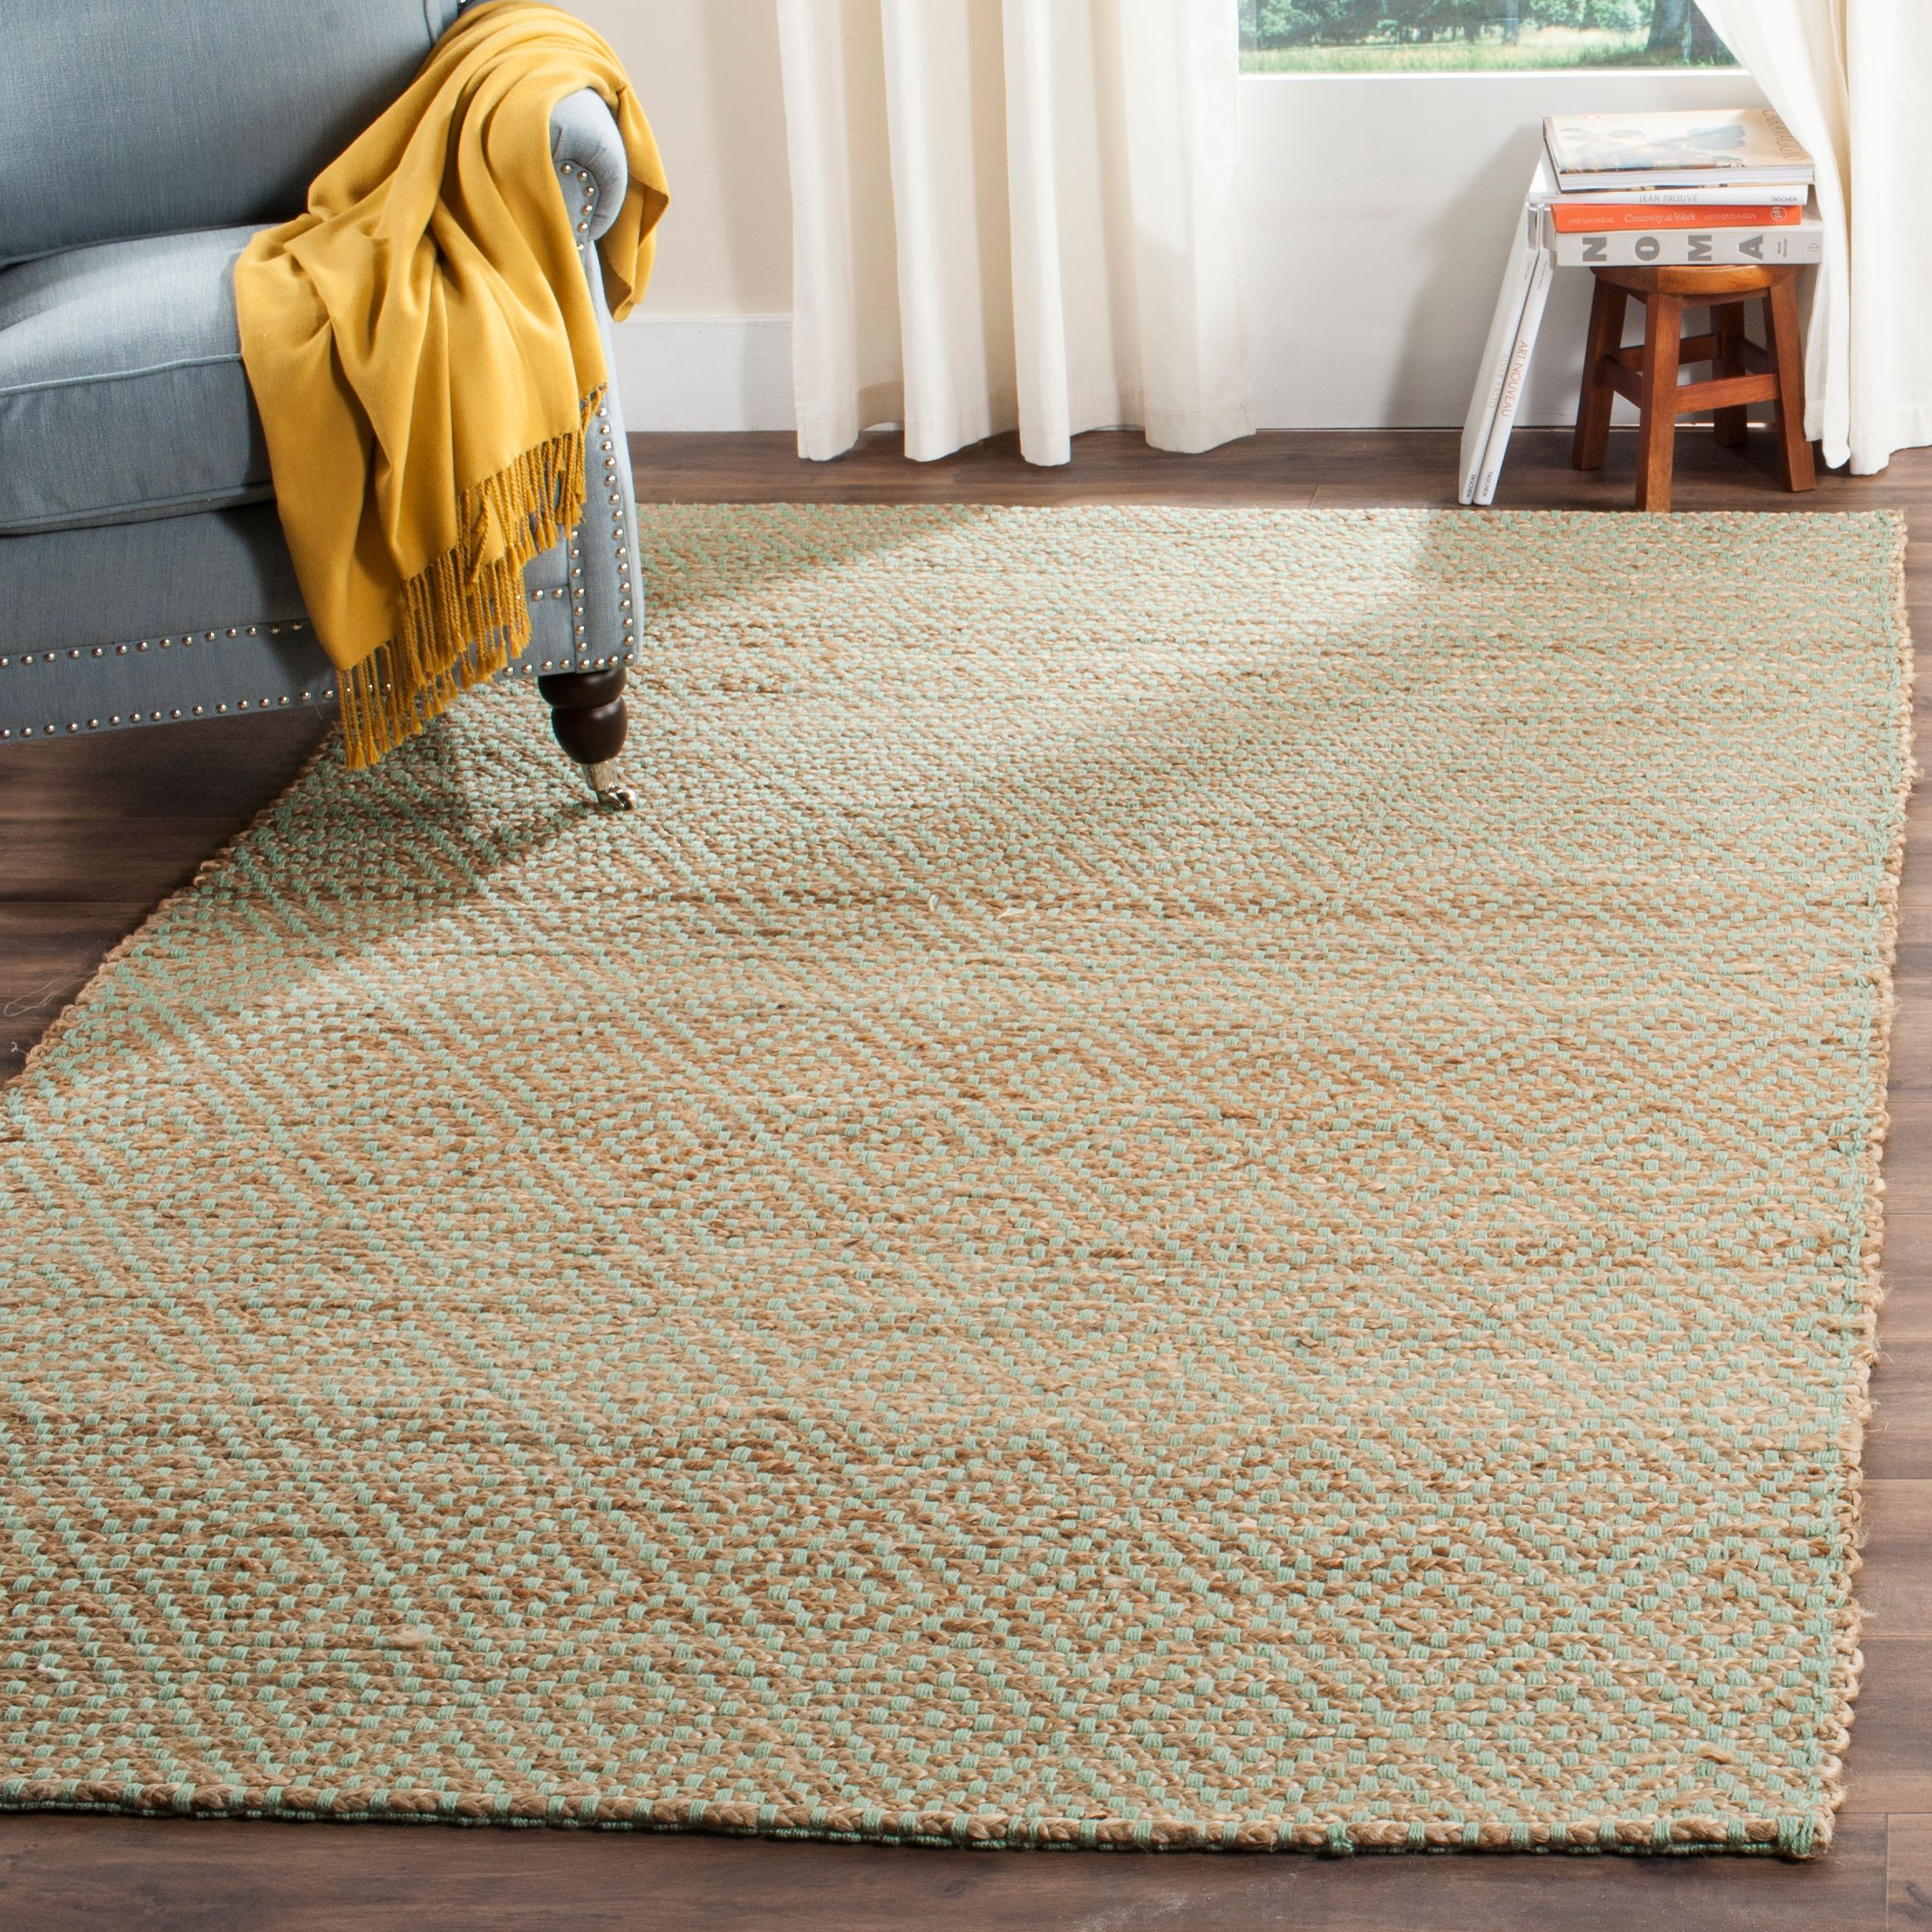 Safavieh Natural Fiber Braxton Braided Area Rug or Runner